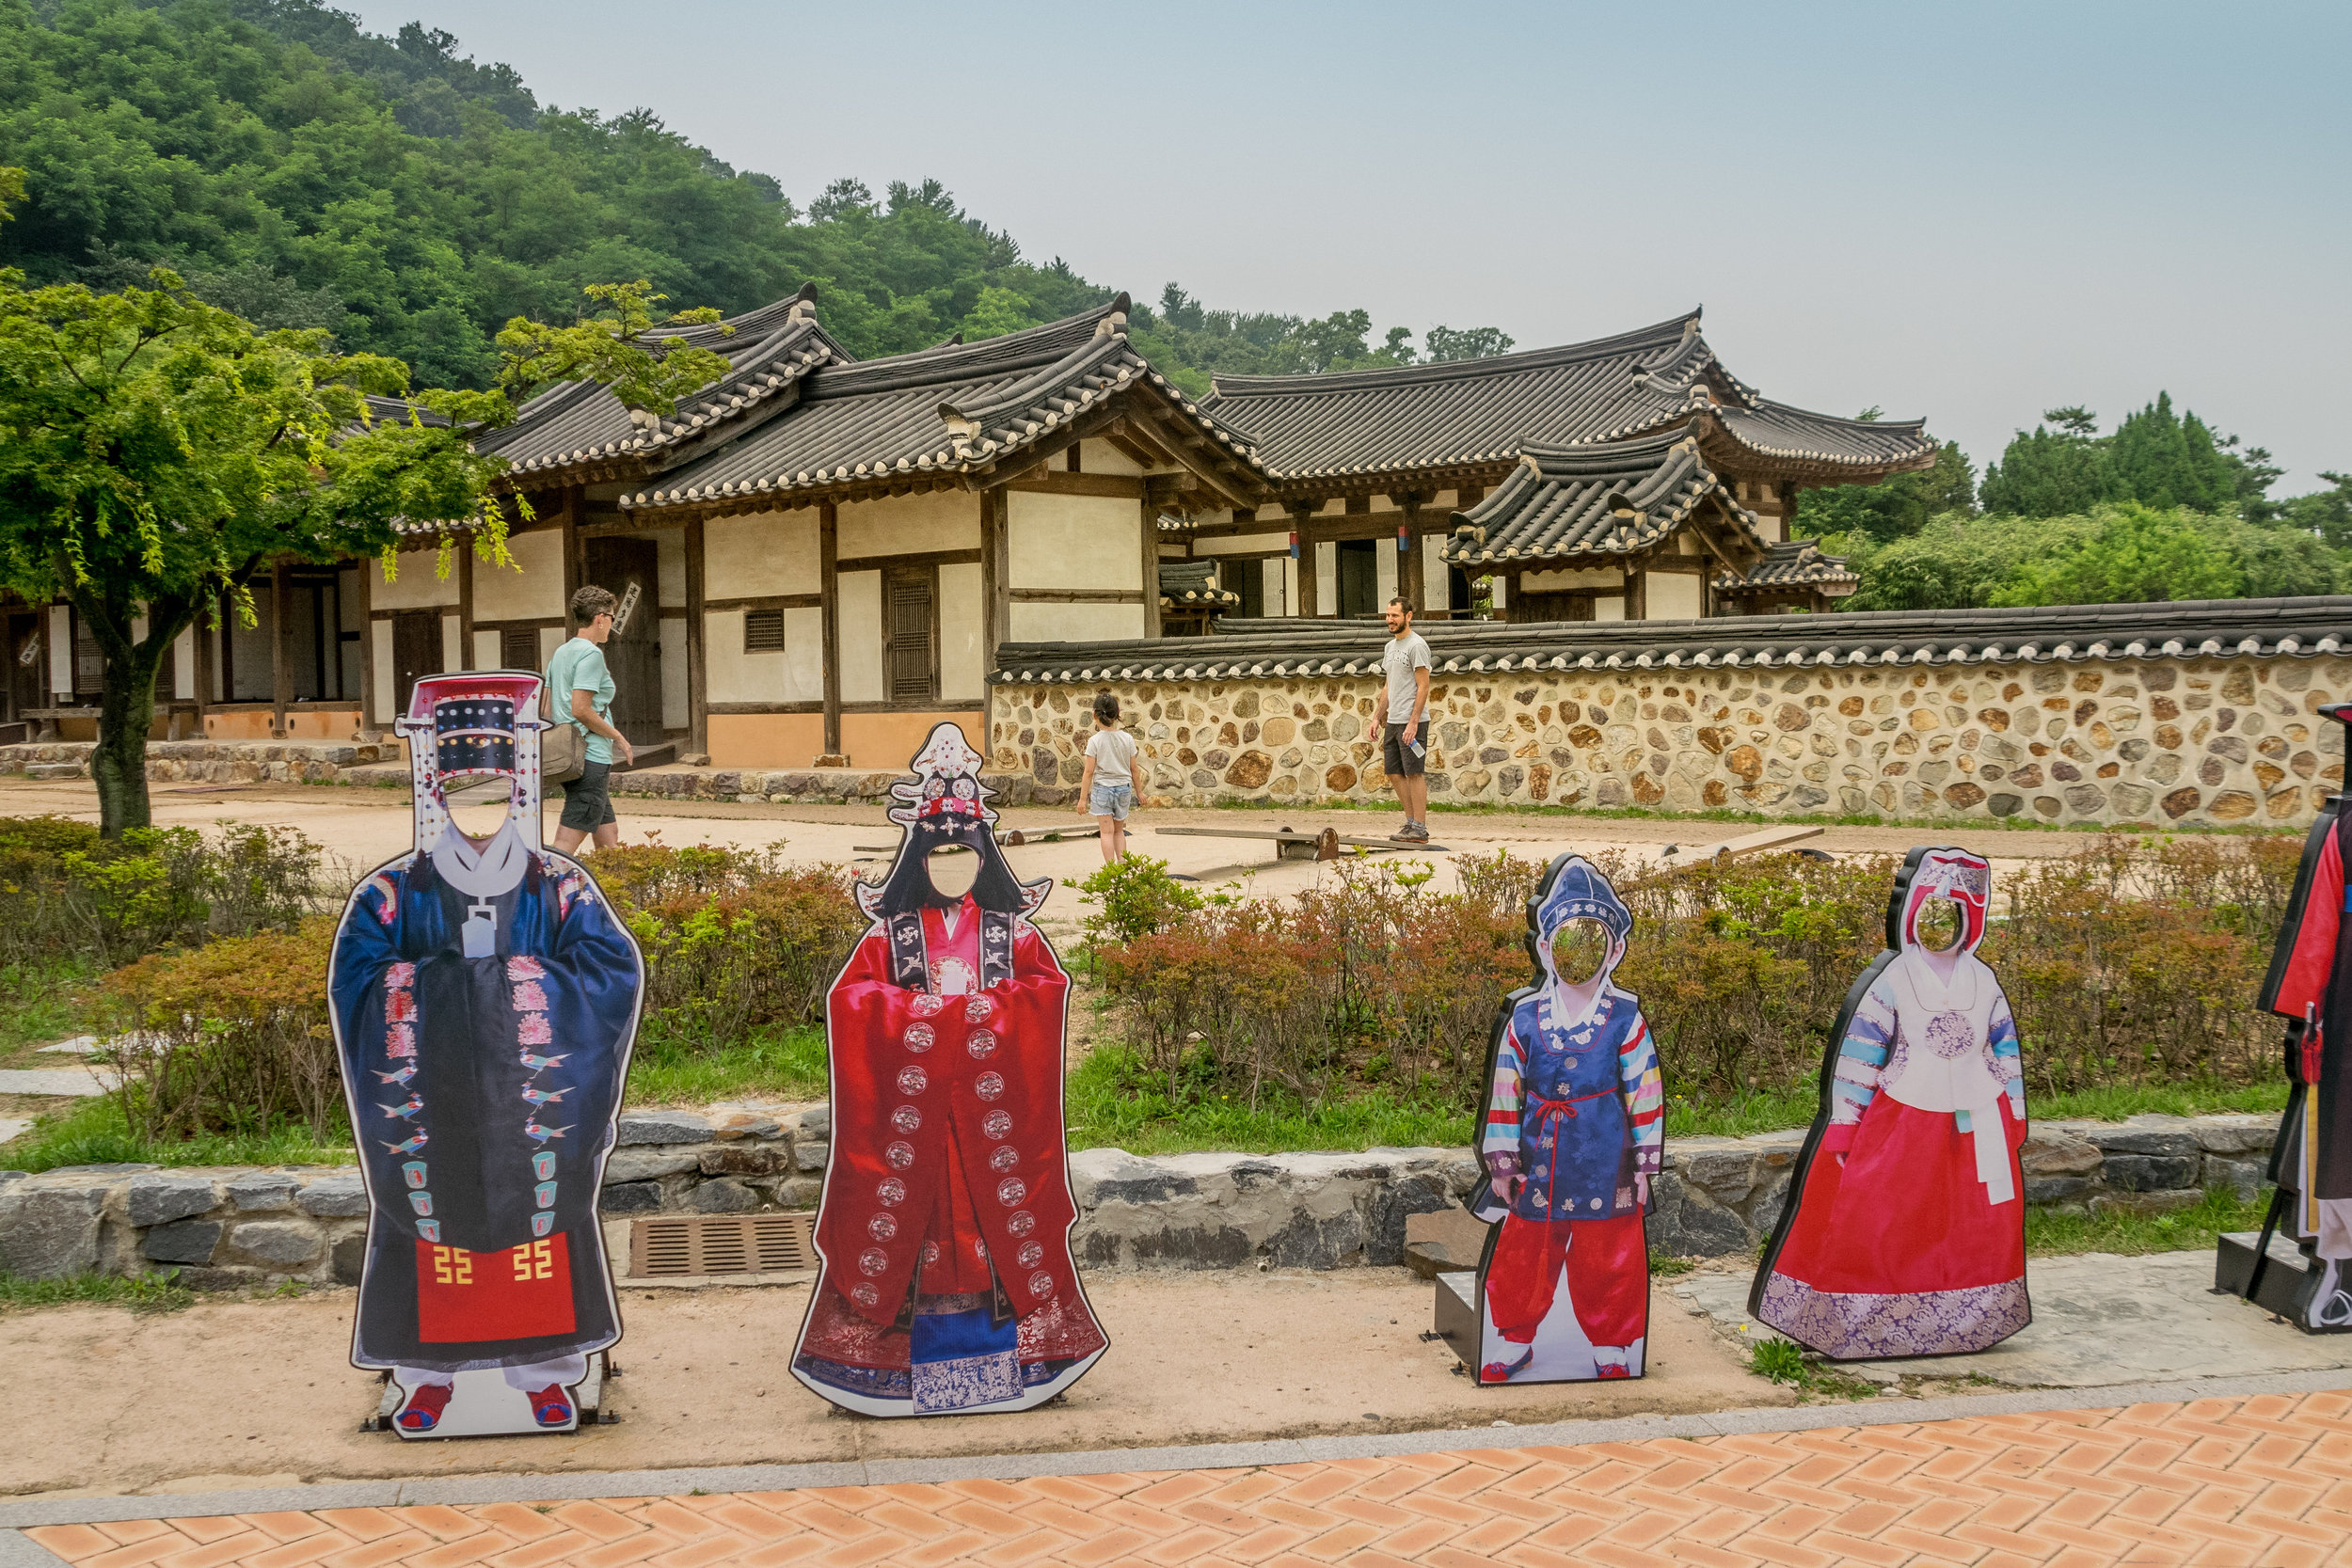 Traditional Korean style homes for the very wealthy families